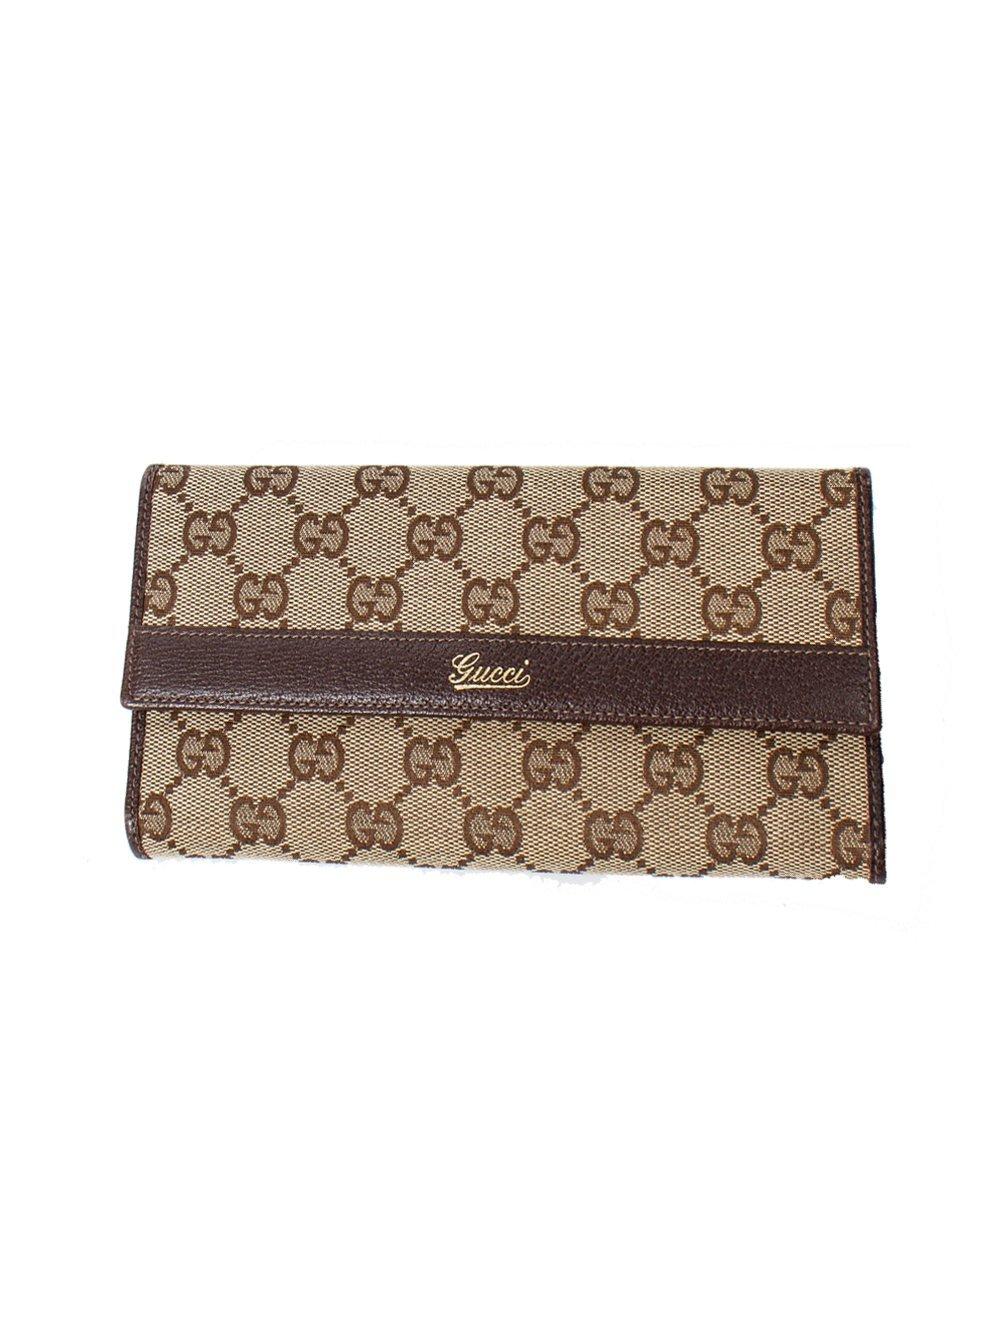 GUCCI Pre-Loved Signature Logo Card Wallet